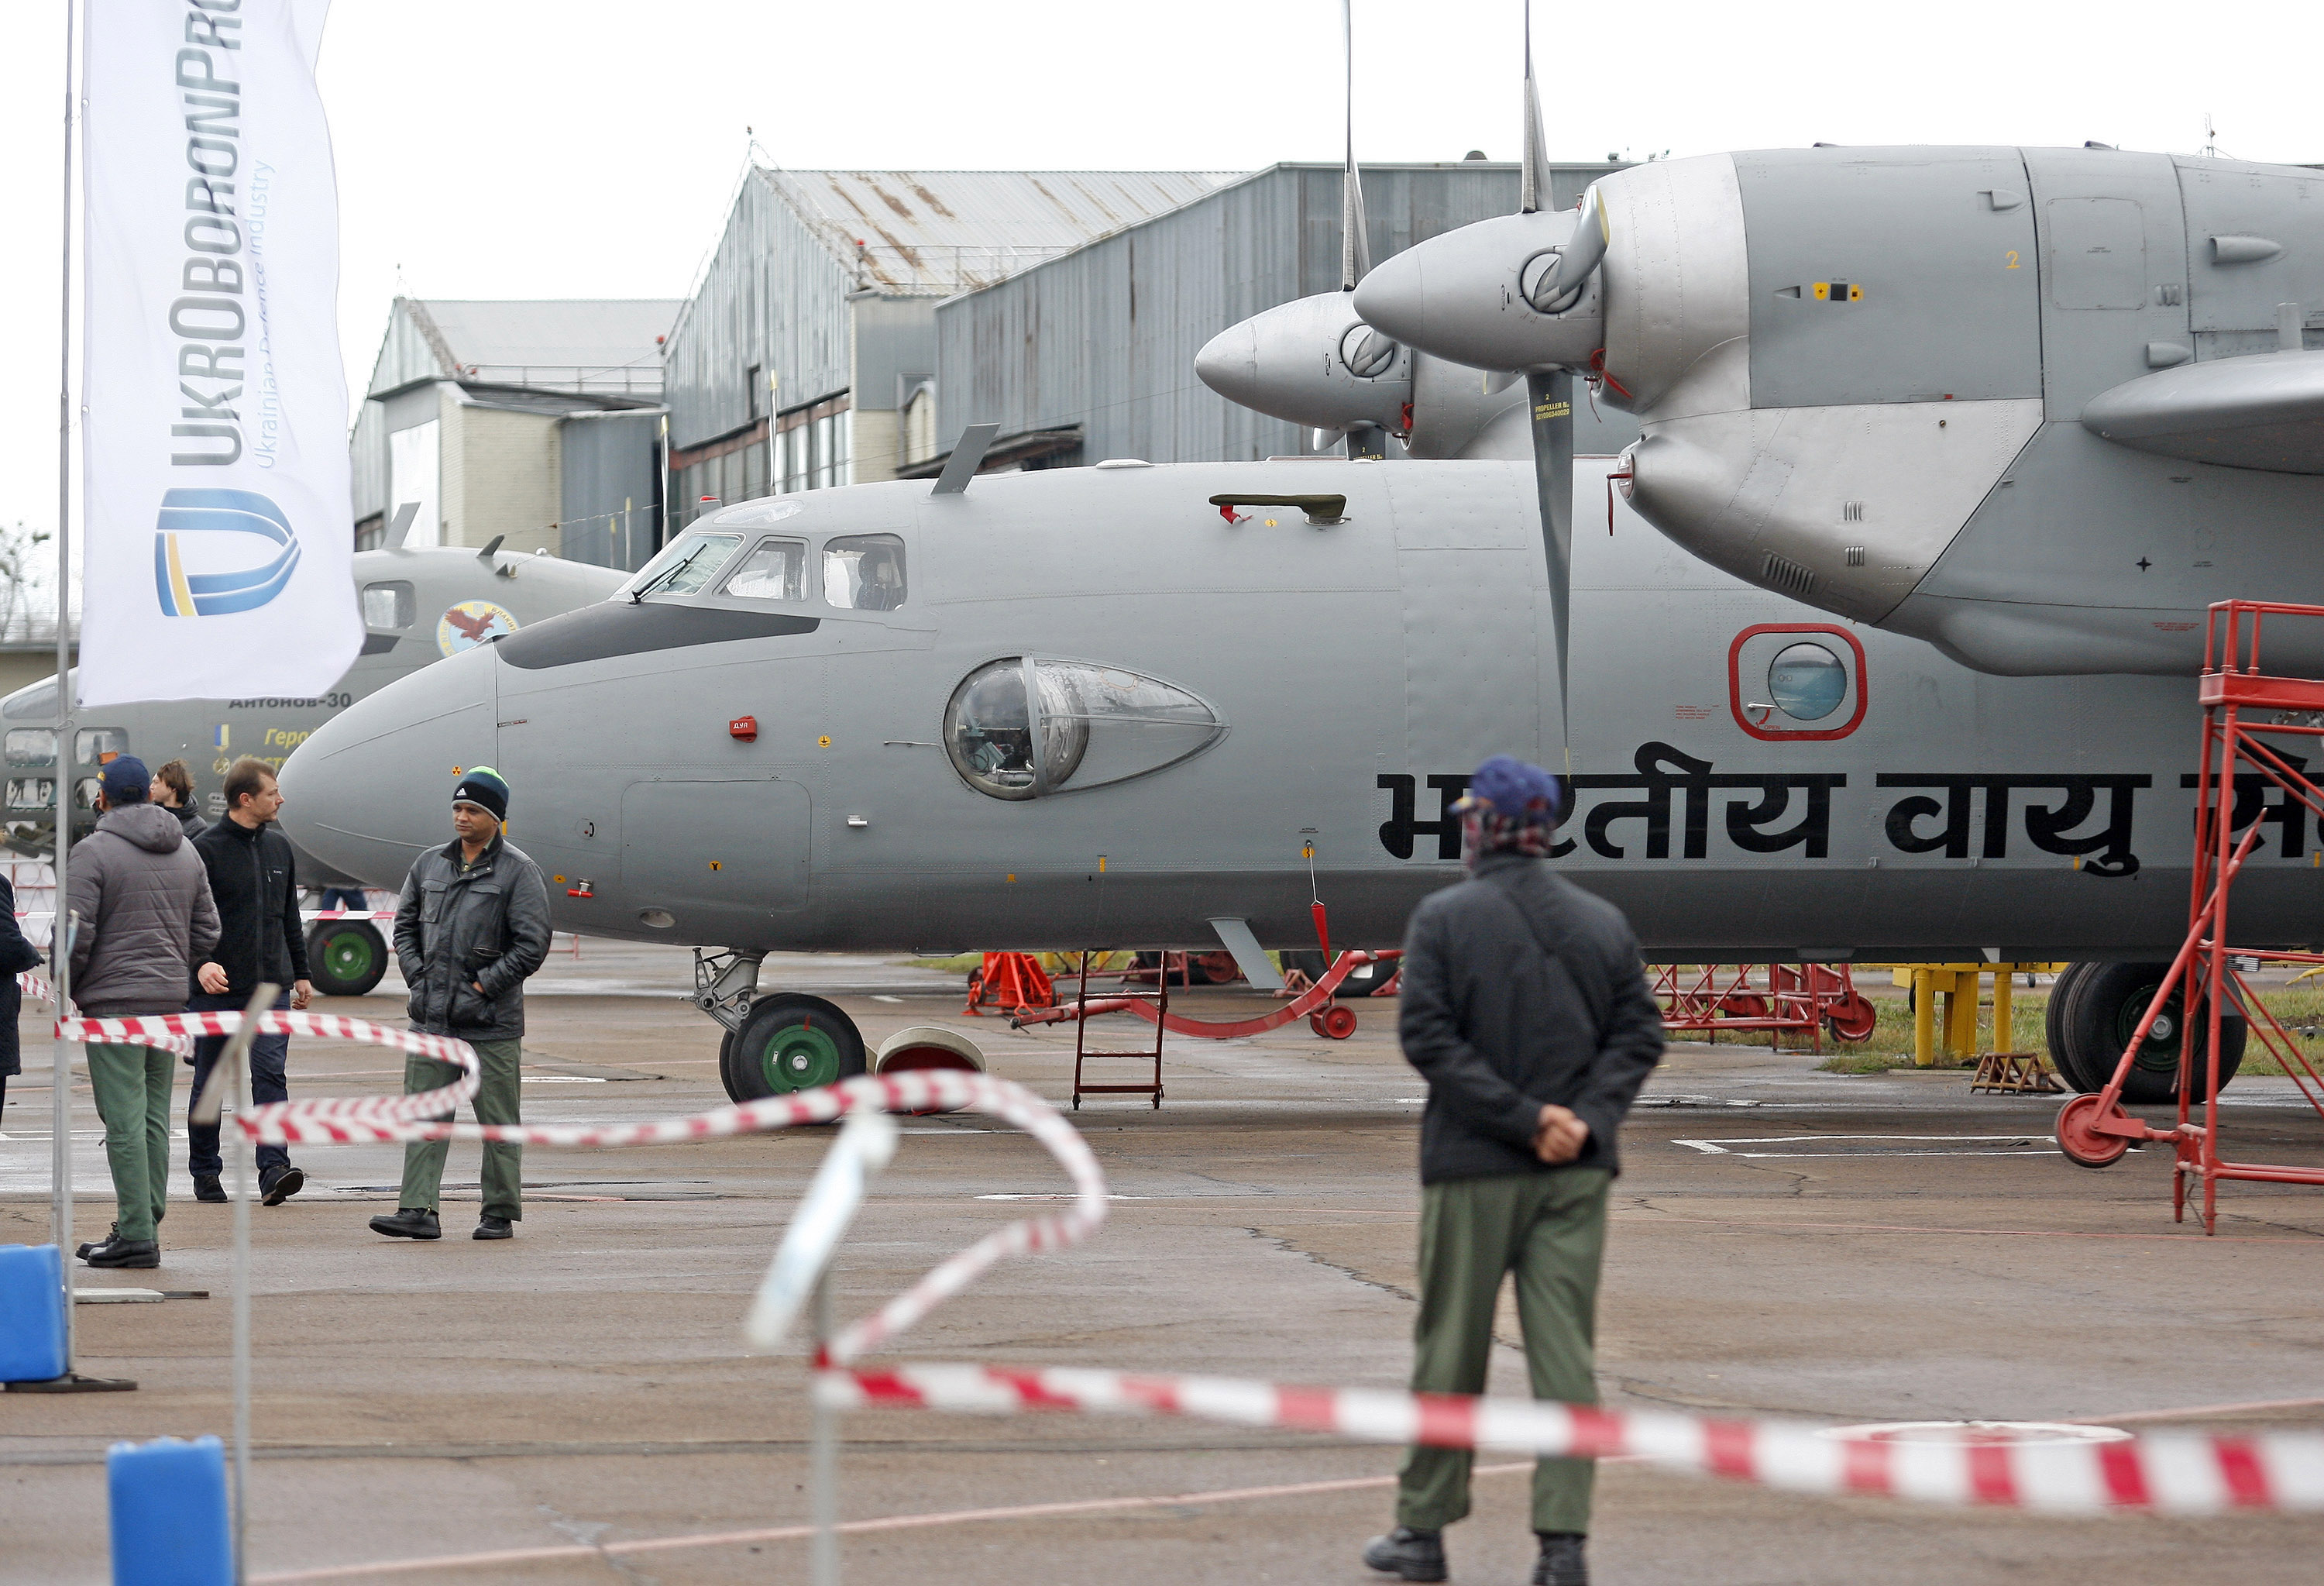 Representatives of Indian Air Force during the handover of 5 modernized AN-32RE planes for IAF on November 19, 2015 in Kiev, Ukraine.